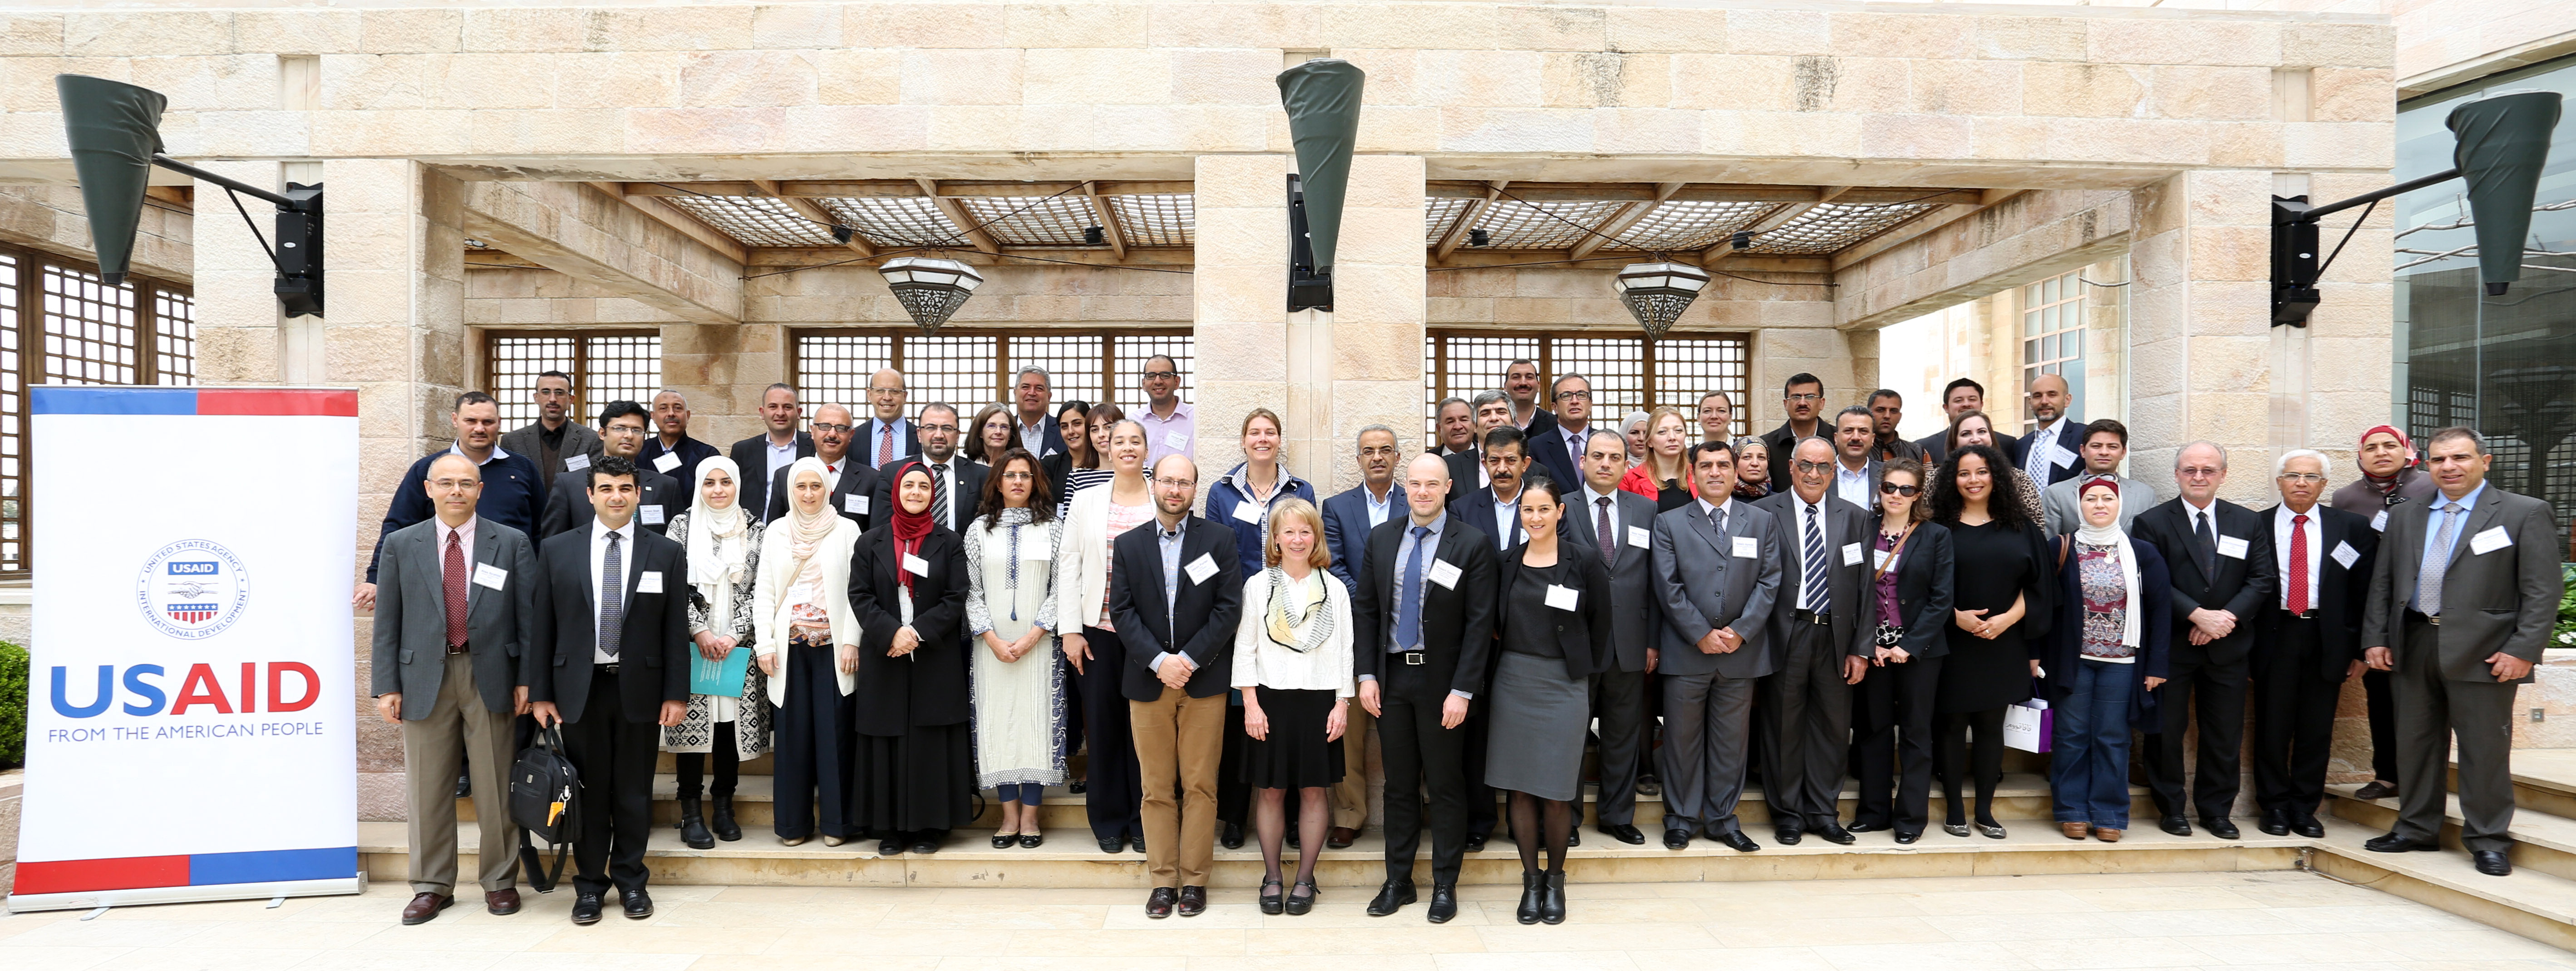 PEER MENA Forum Group Photo